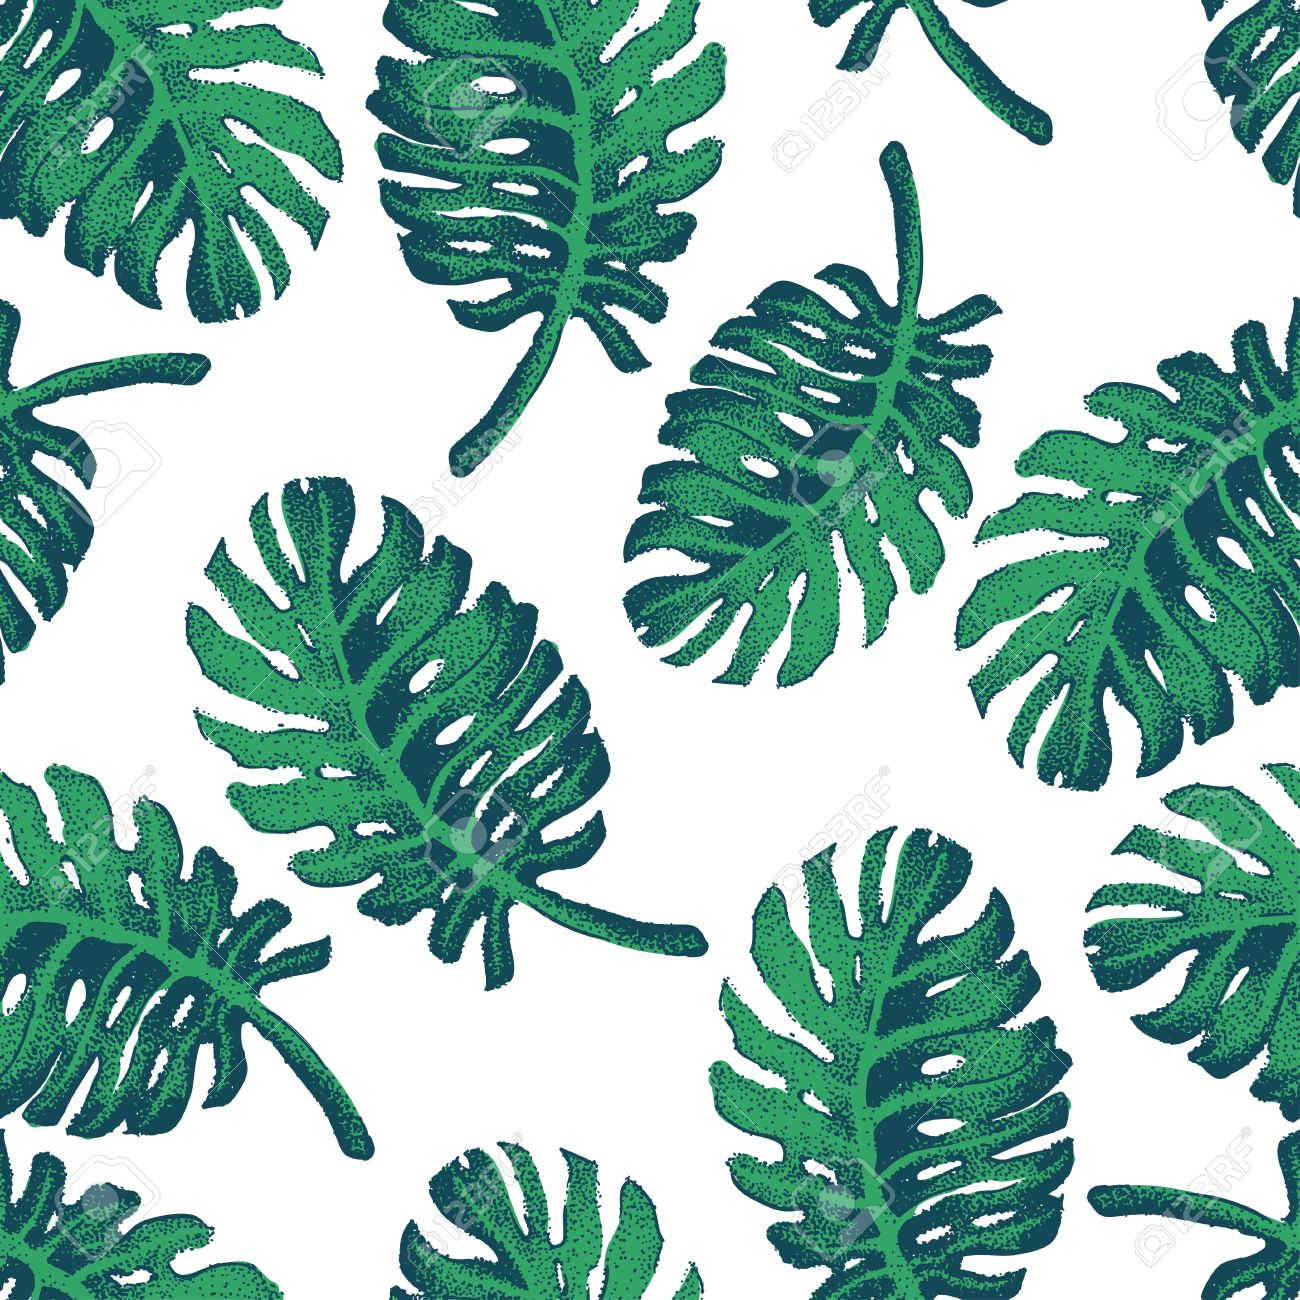 Vector Illustration Of Palm Tree Sketch For Design Website Royalty Free Cliparts Vectors And Stock Illustration Image 54830531